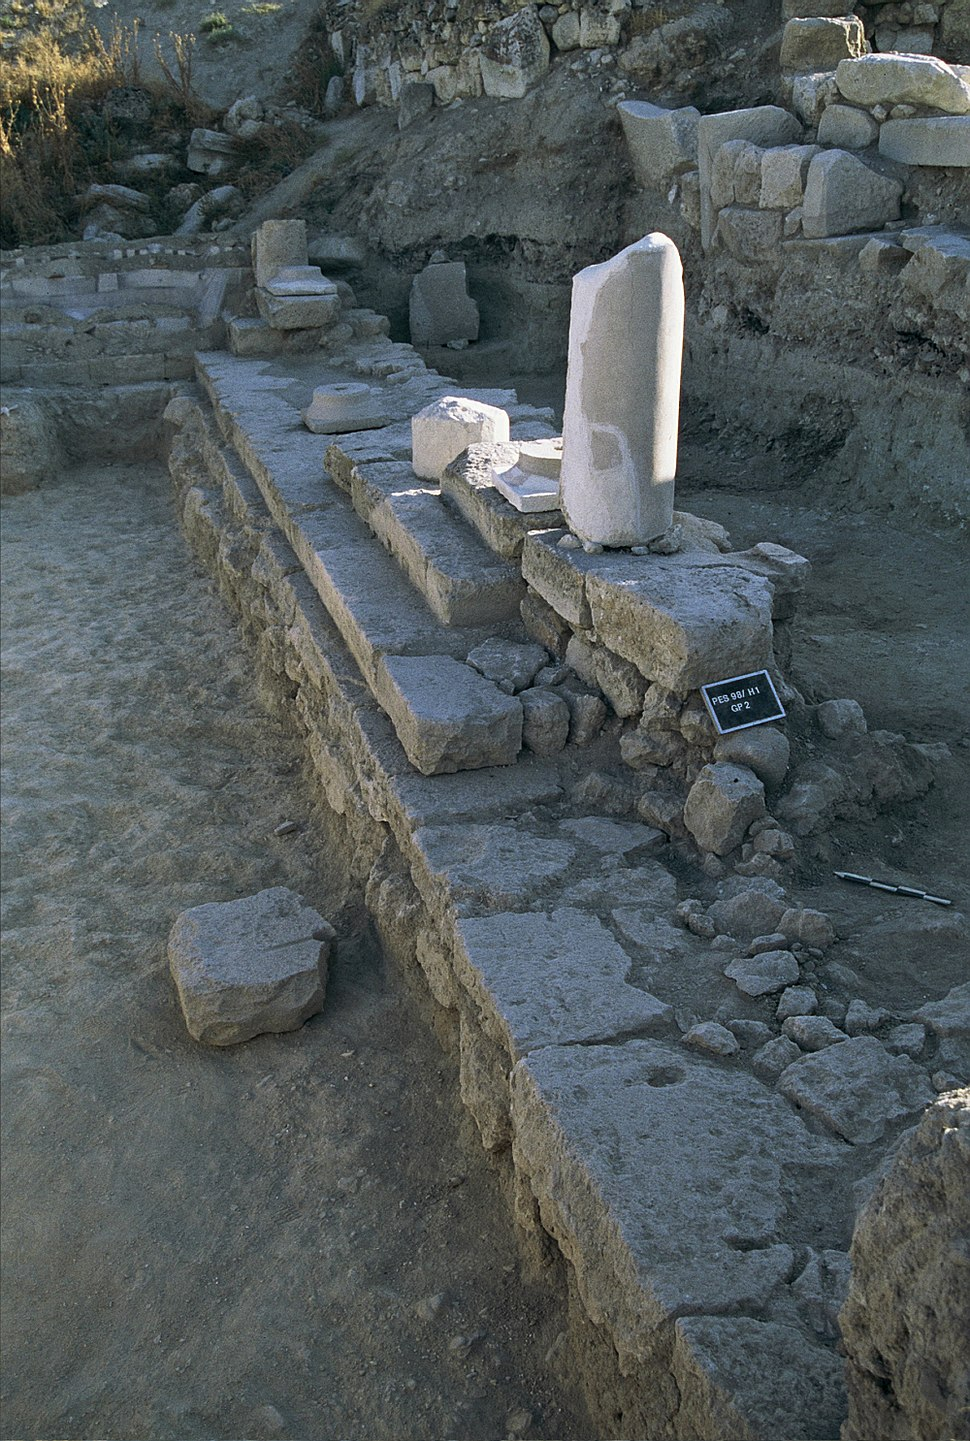 Eastern stoa of the colonnaded square at Ballihisar (Pessinus)